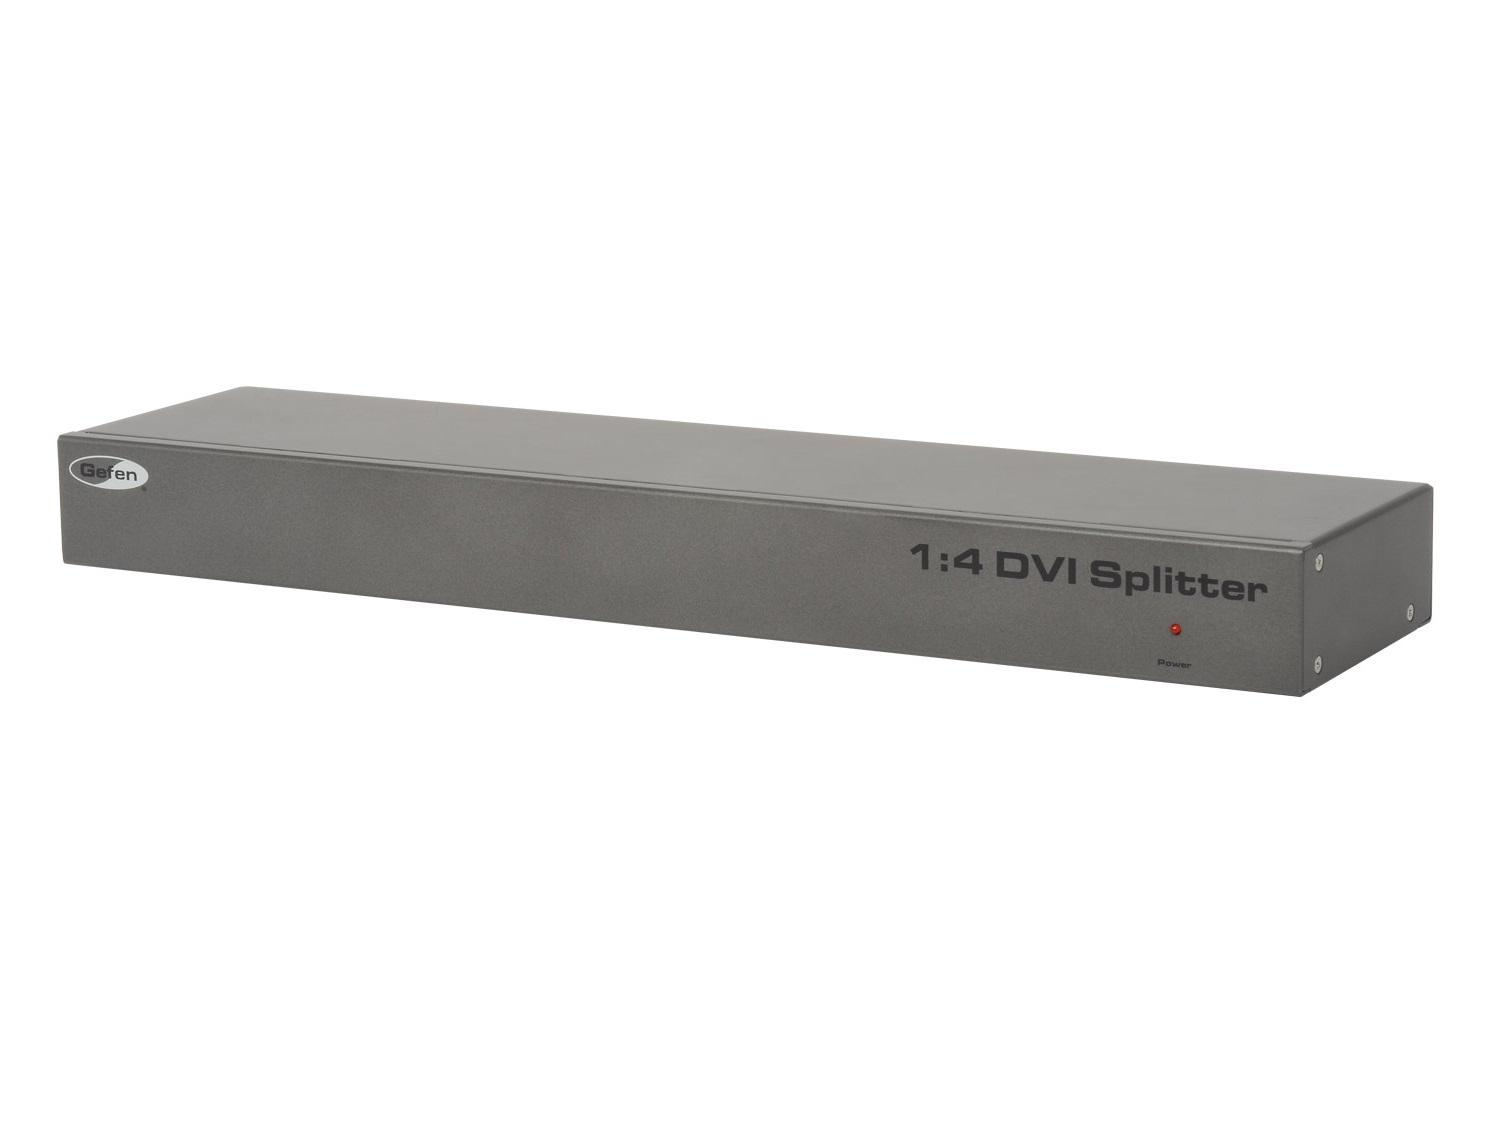 EXT-DVI-144N 1x4 DVI Distribution Amplifier by Gefen